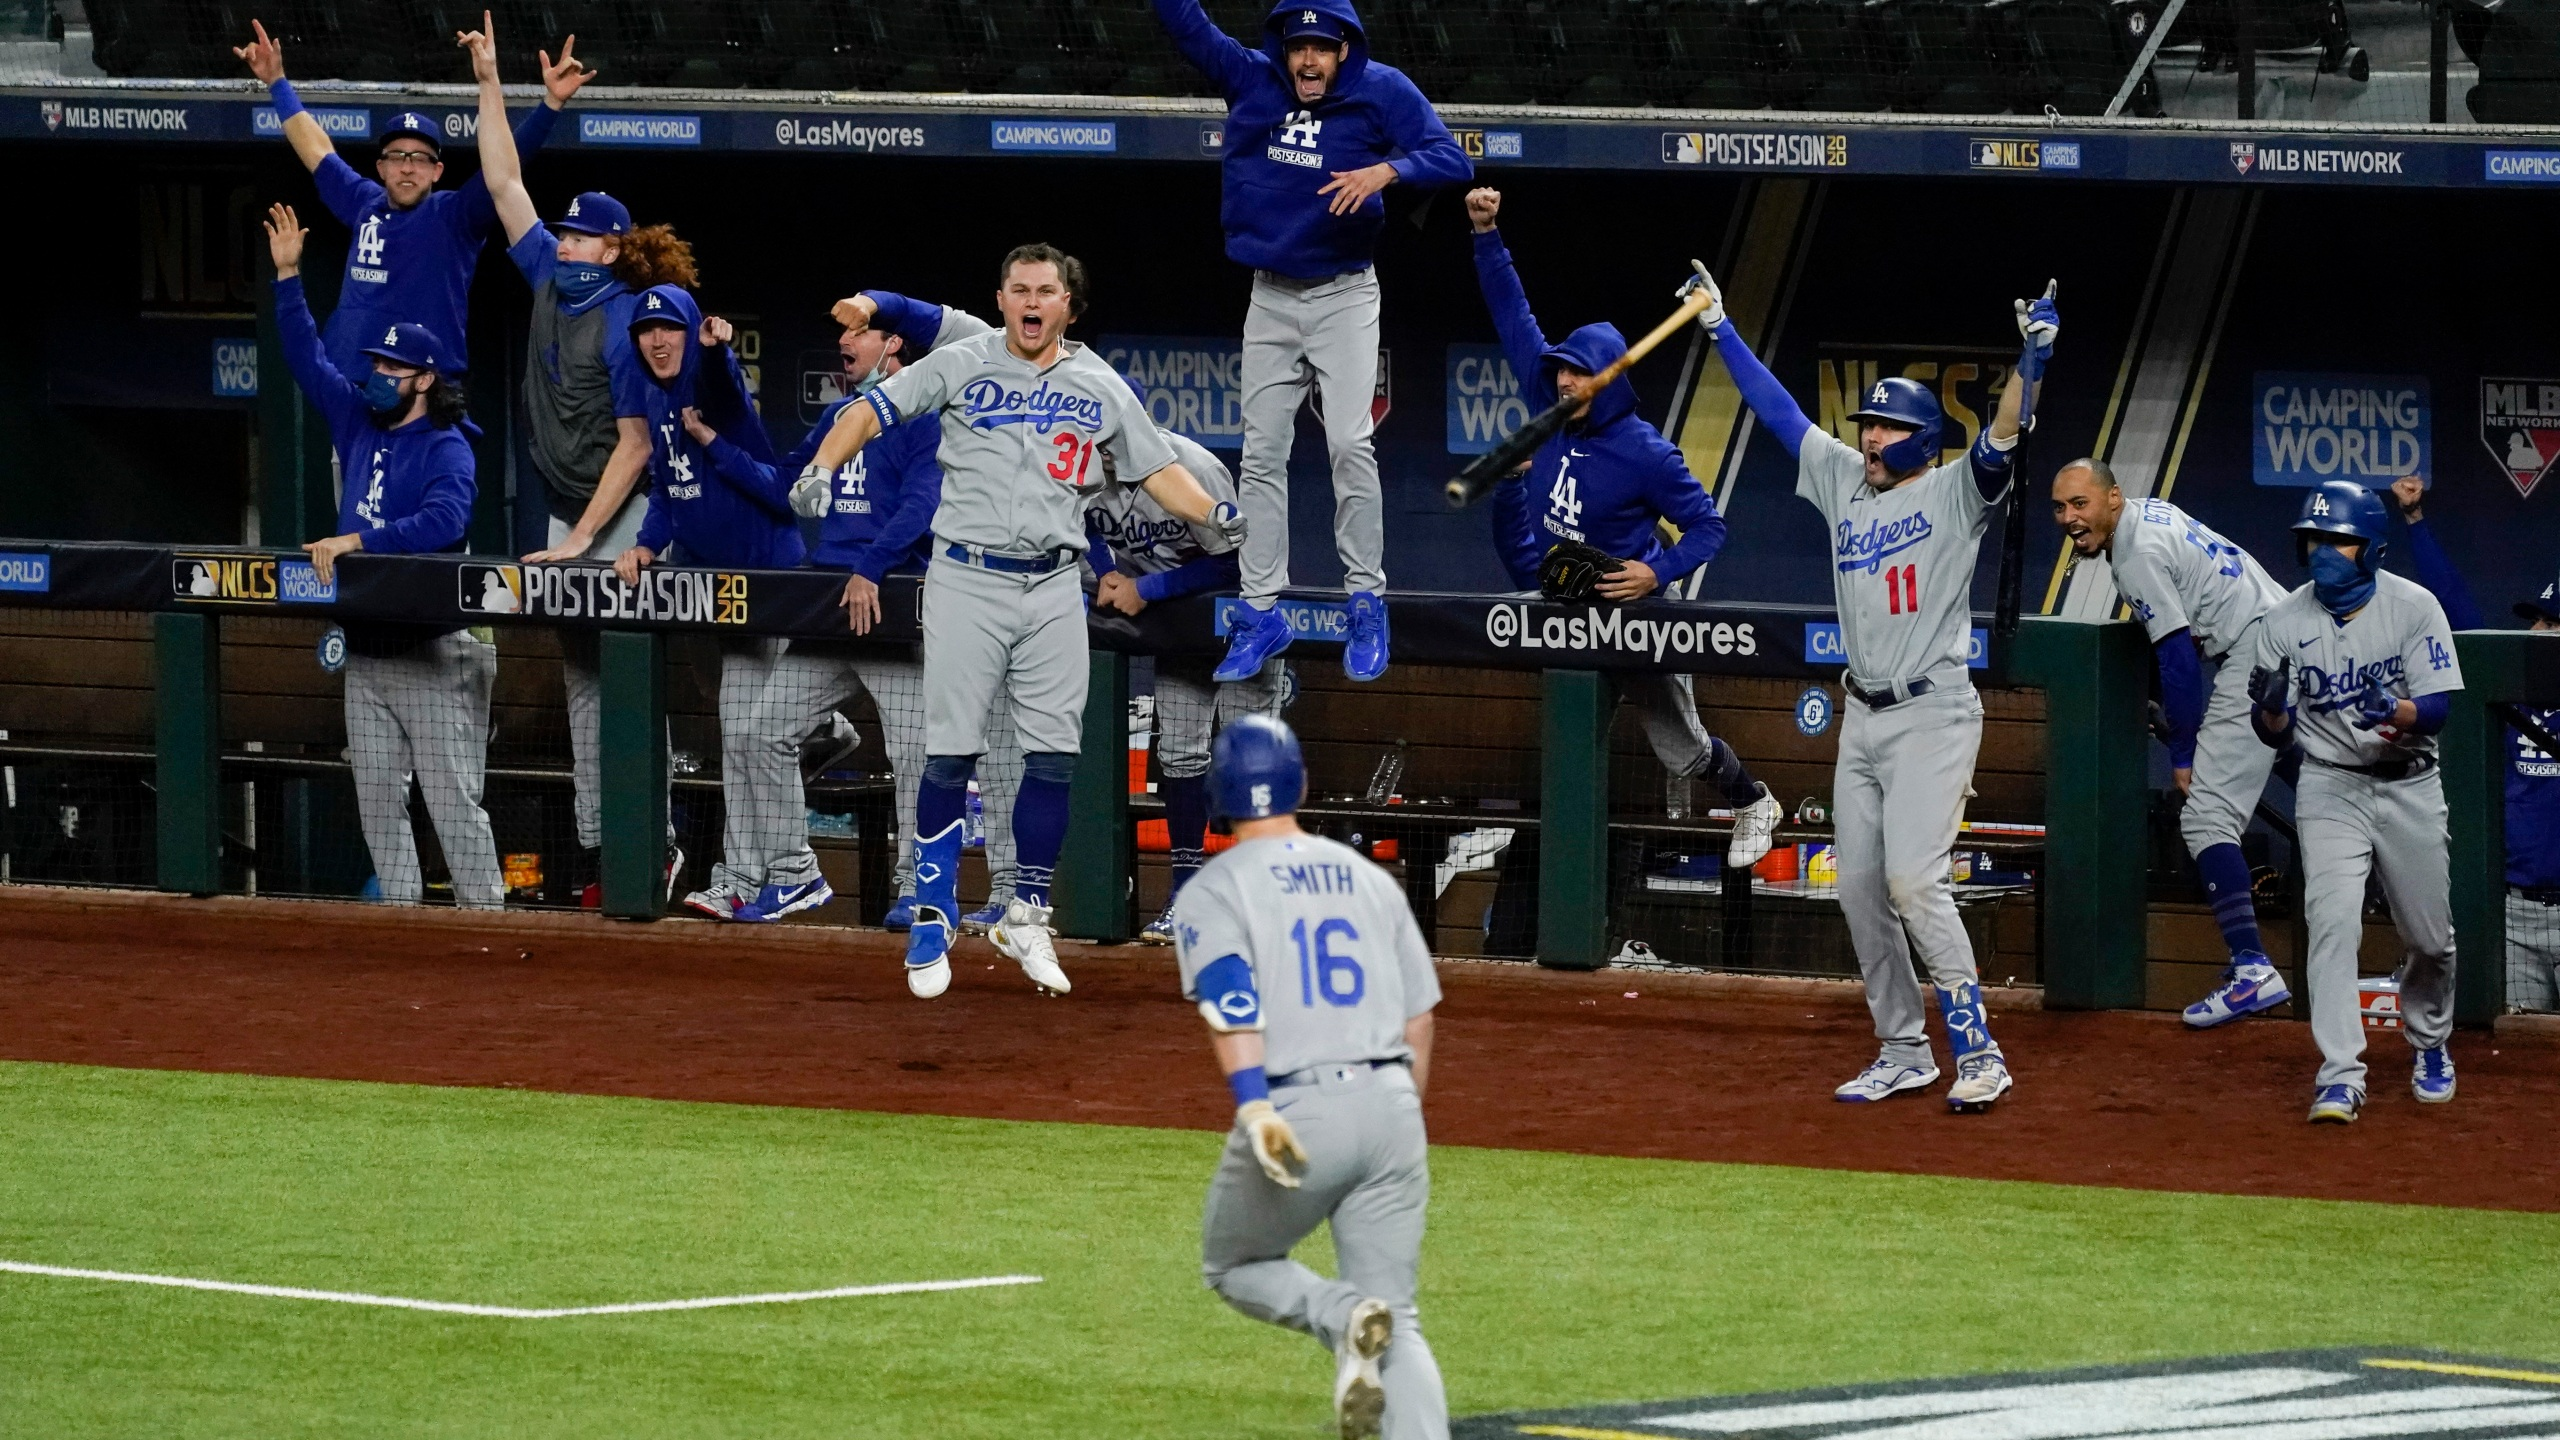 The Los Angeles Dodgers celebrate a three-run home run by Will Smith against the Atlanta Braves during the sixth inning in Game 5 of a baseball National League Championship Series on Oct. 16, 2020, in Arlington, Texas. (AP Photo/Tony Gutierrez)